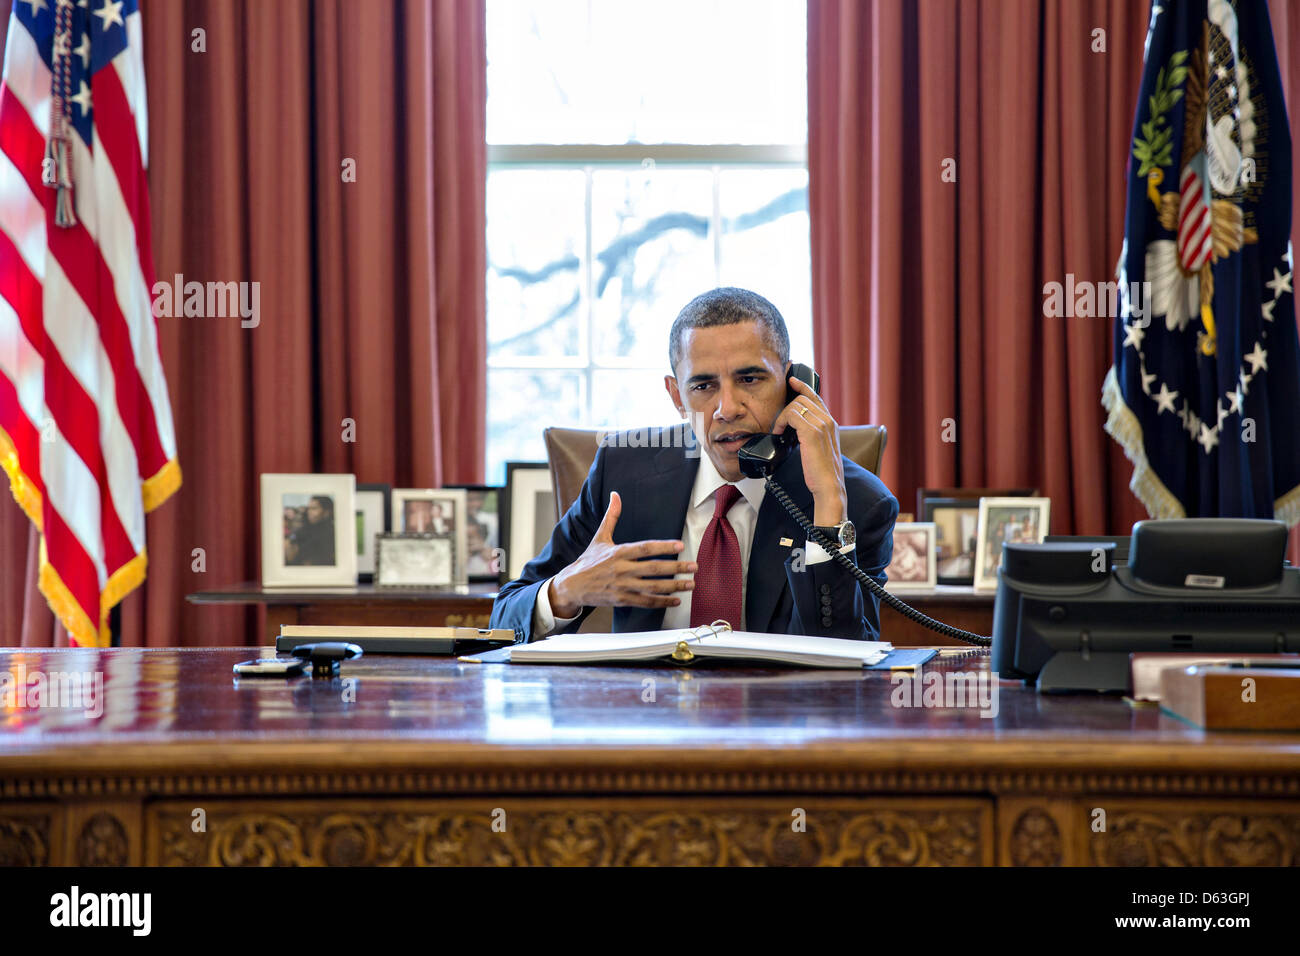 Wahington DC, USA. 11th April 2013. US President Barack Obama talks on the phone with Nicole Hockley and families - Stock Image